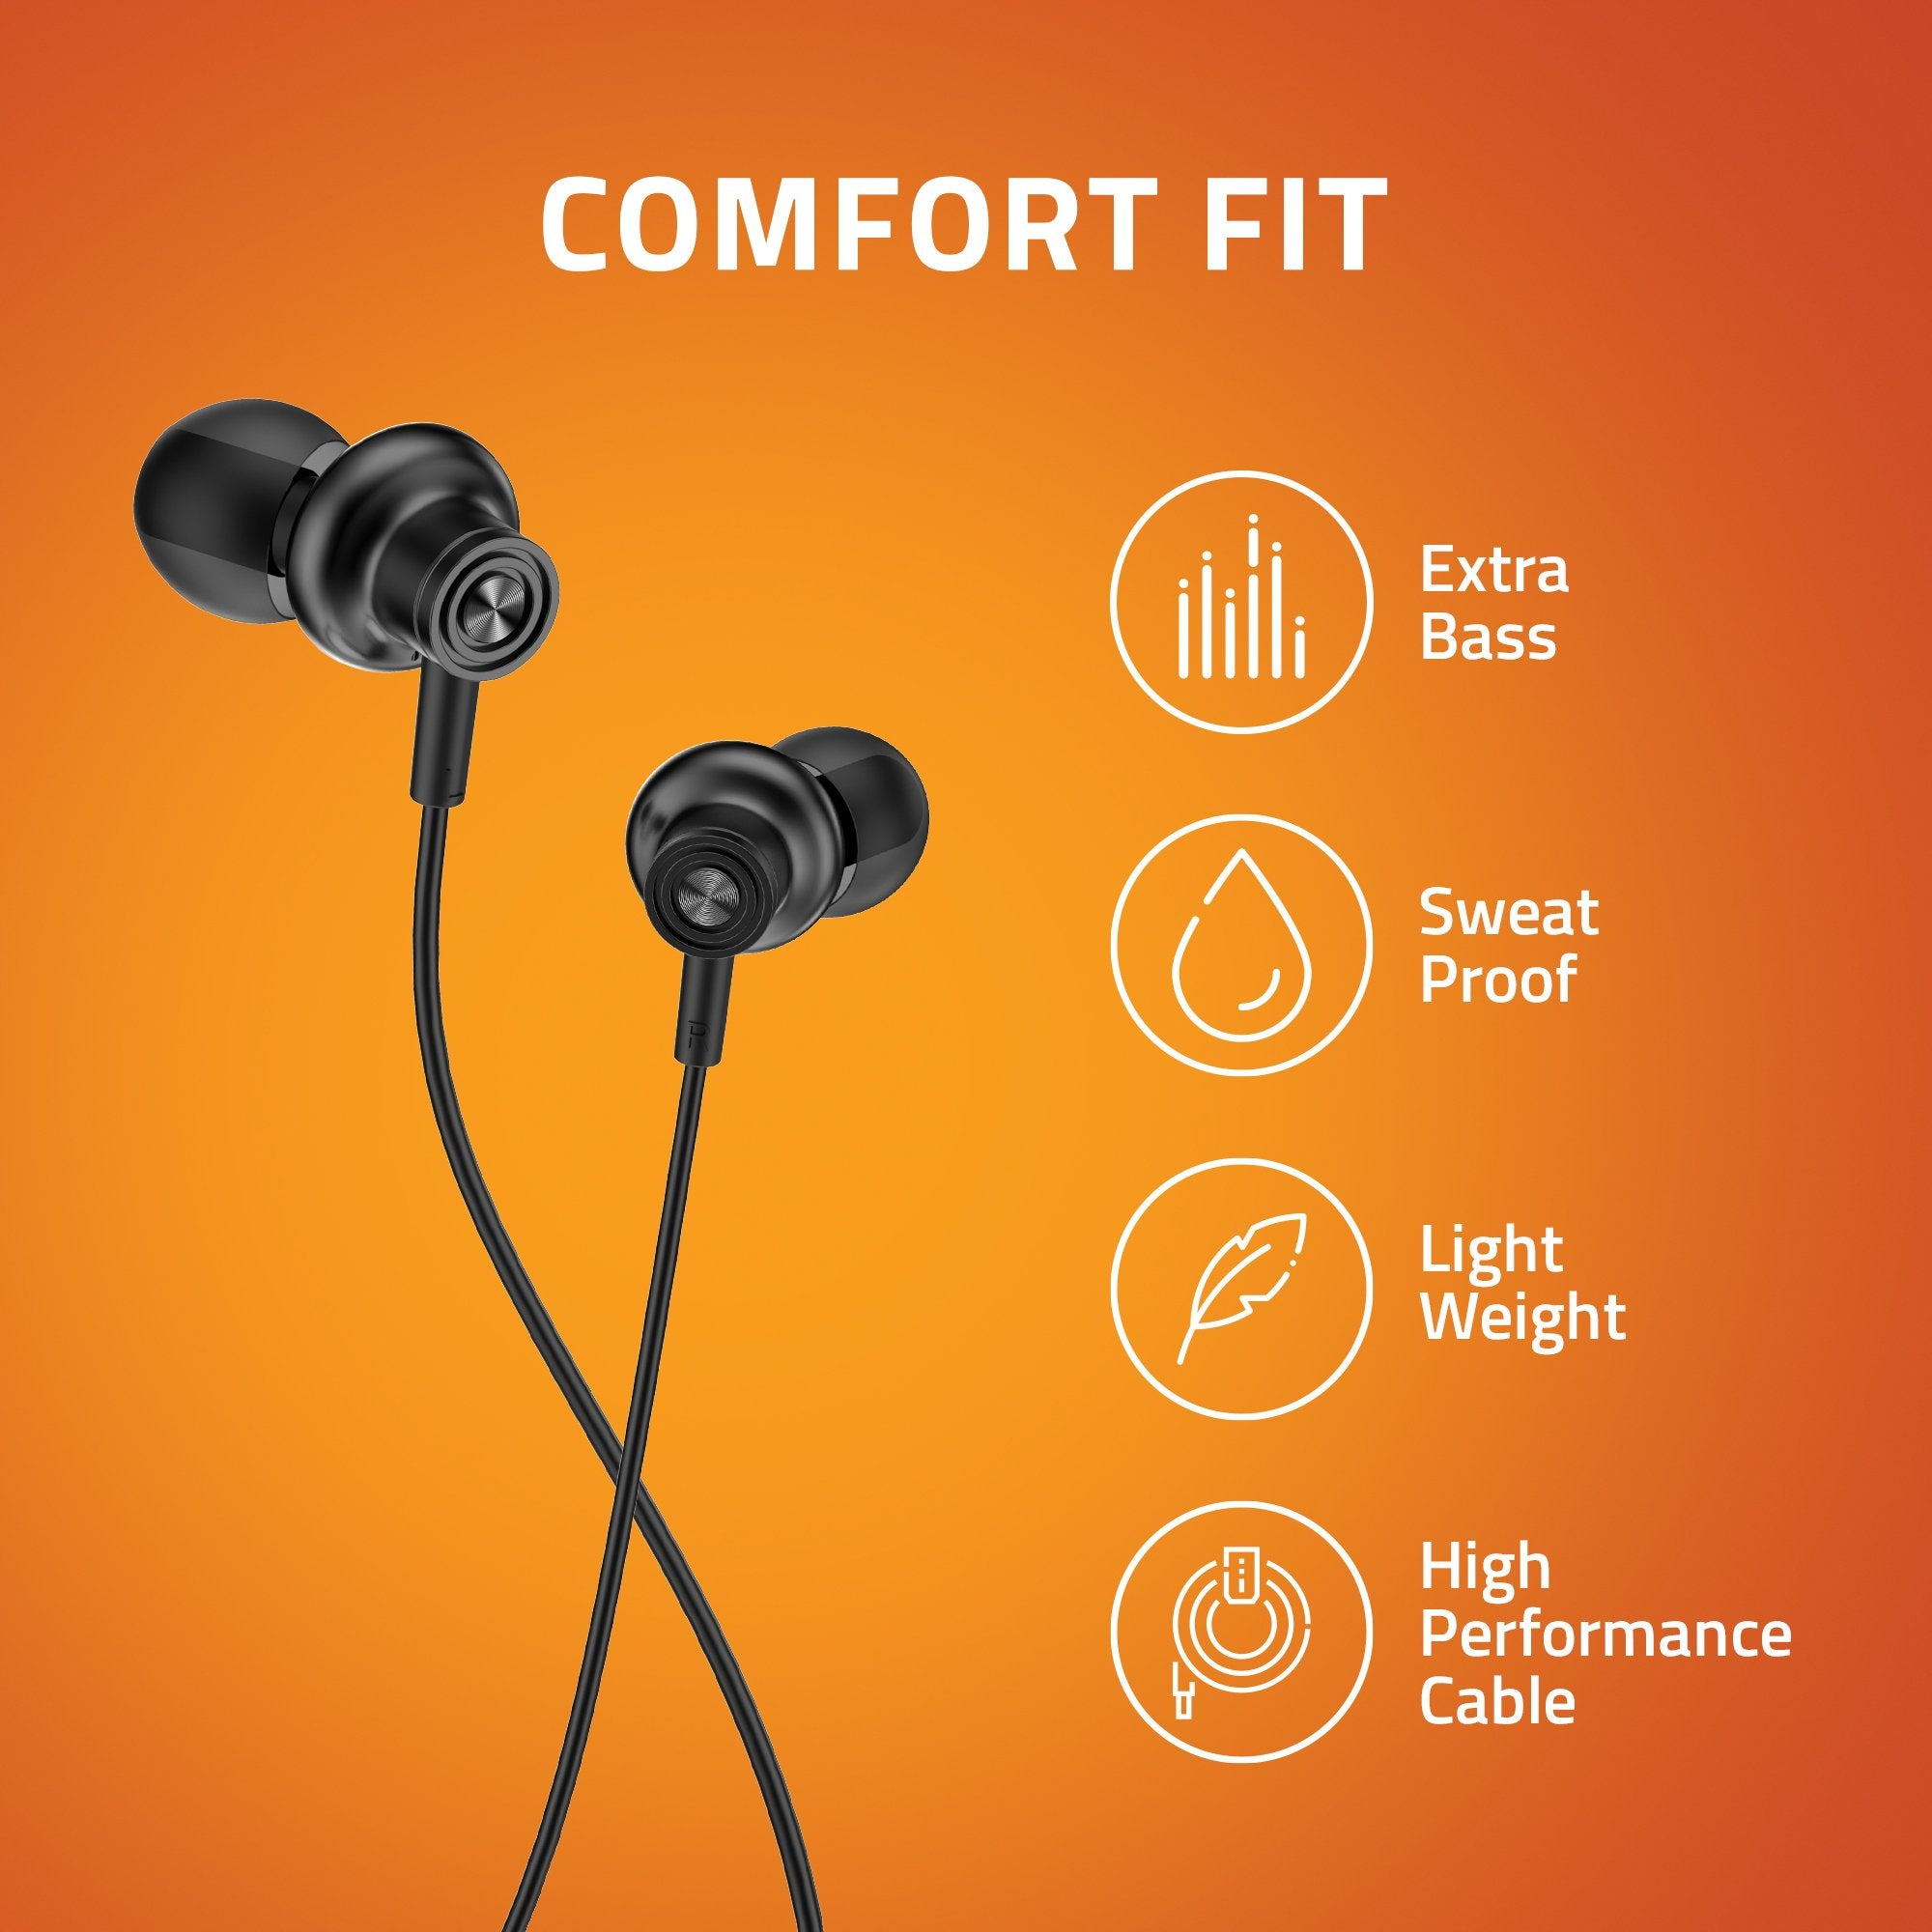 Artis E600M Earphones With Mic - Comfort Fit